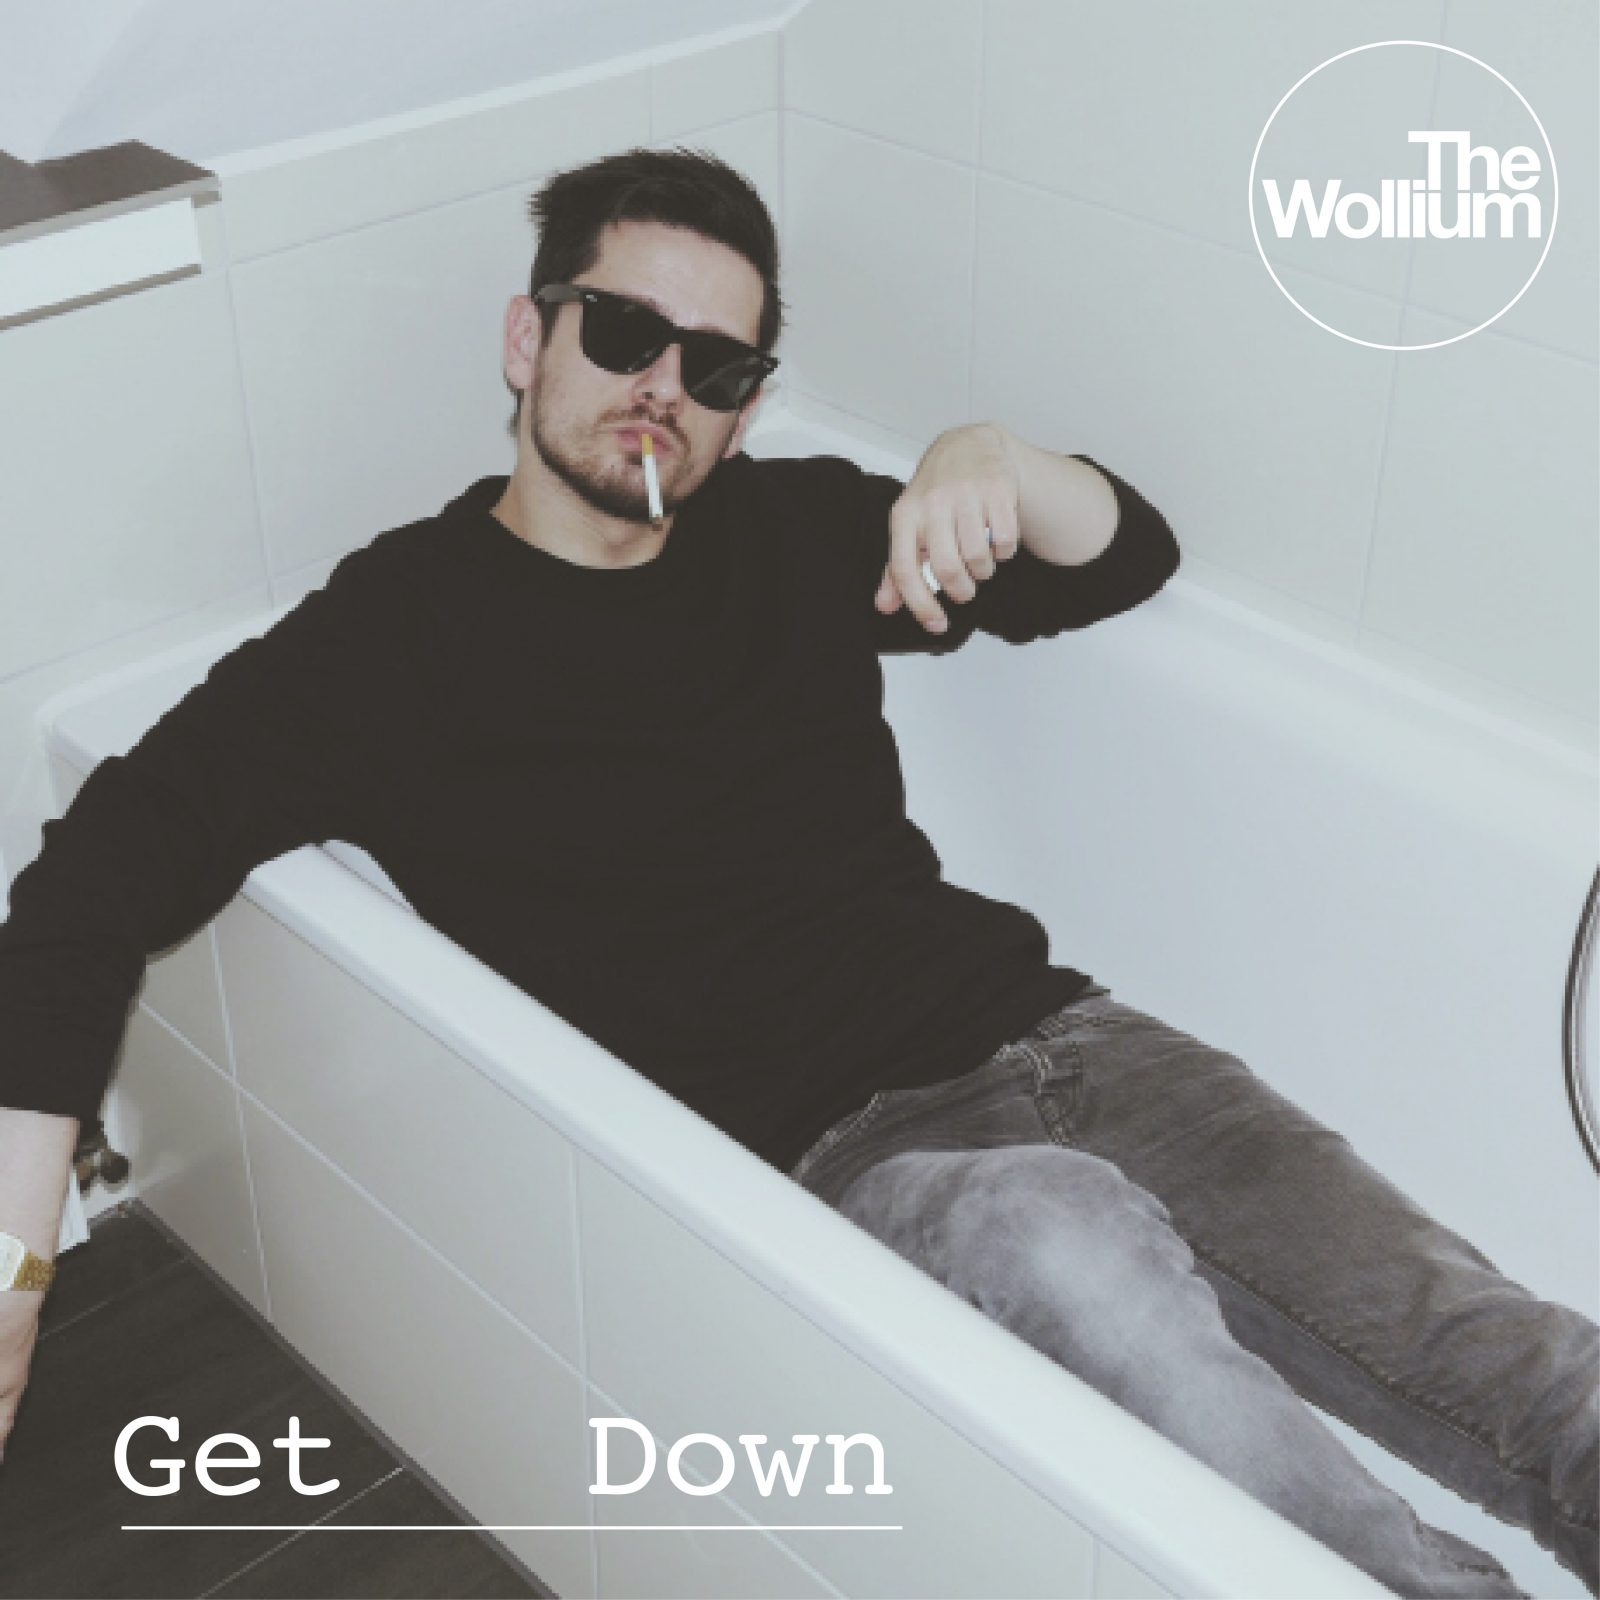 The Wollium - Get Down